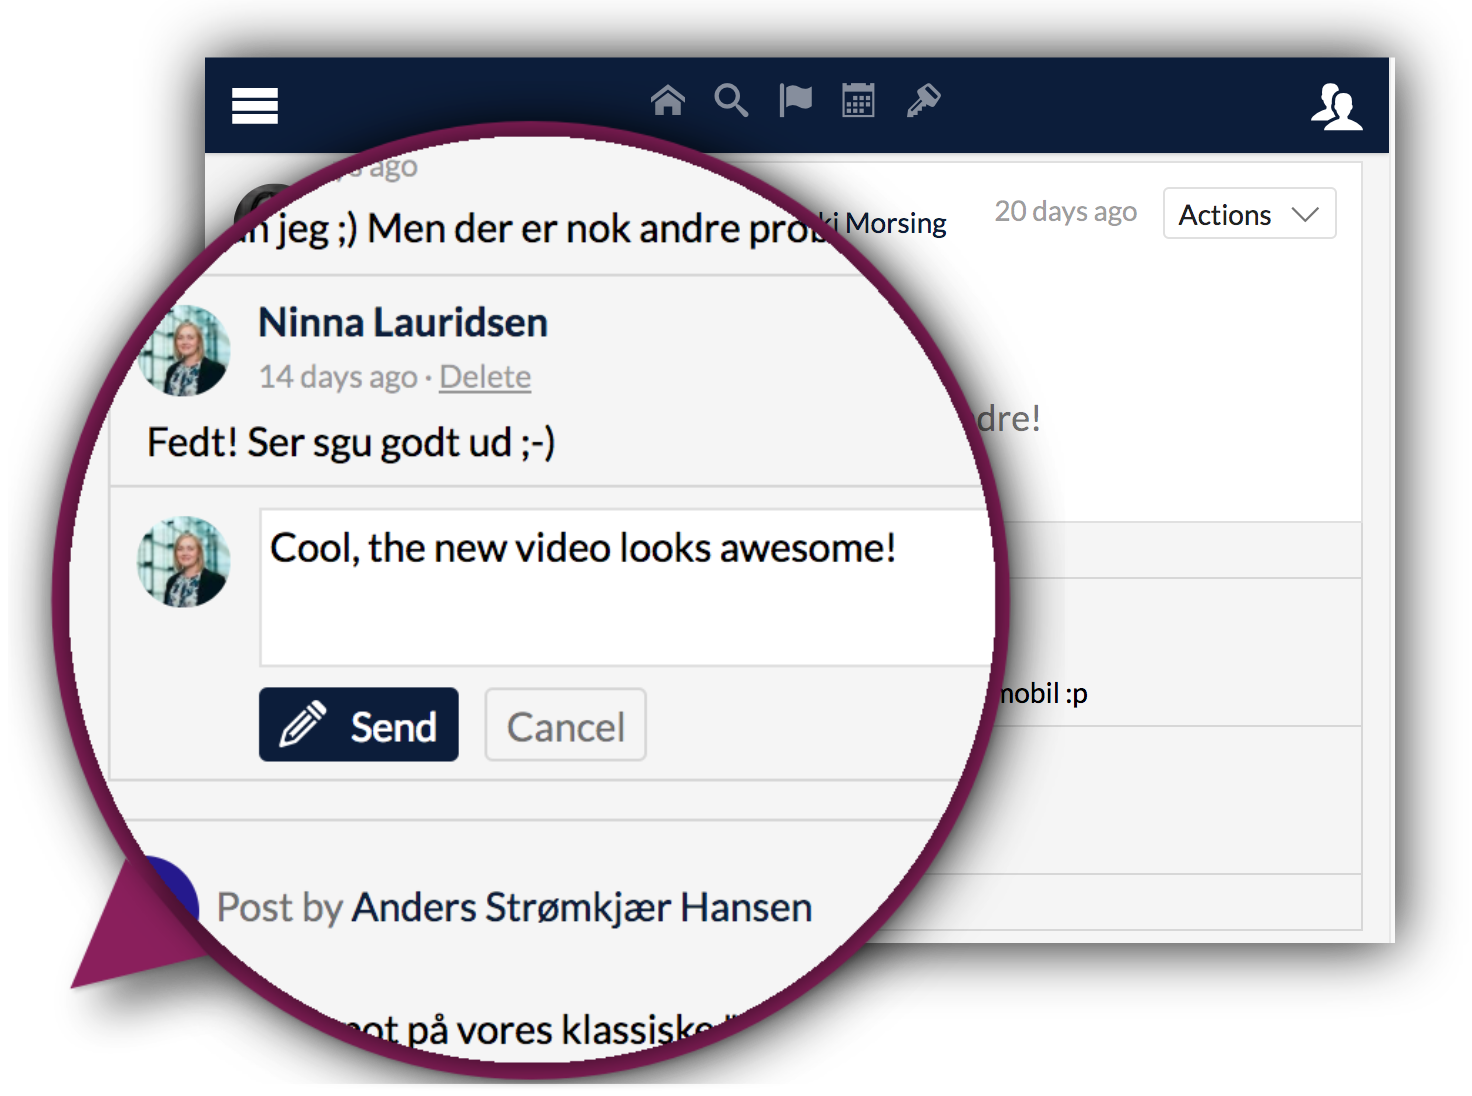 intranet example